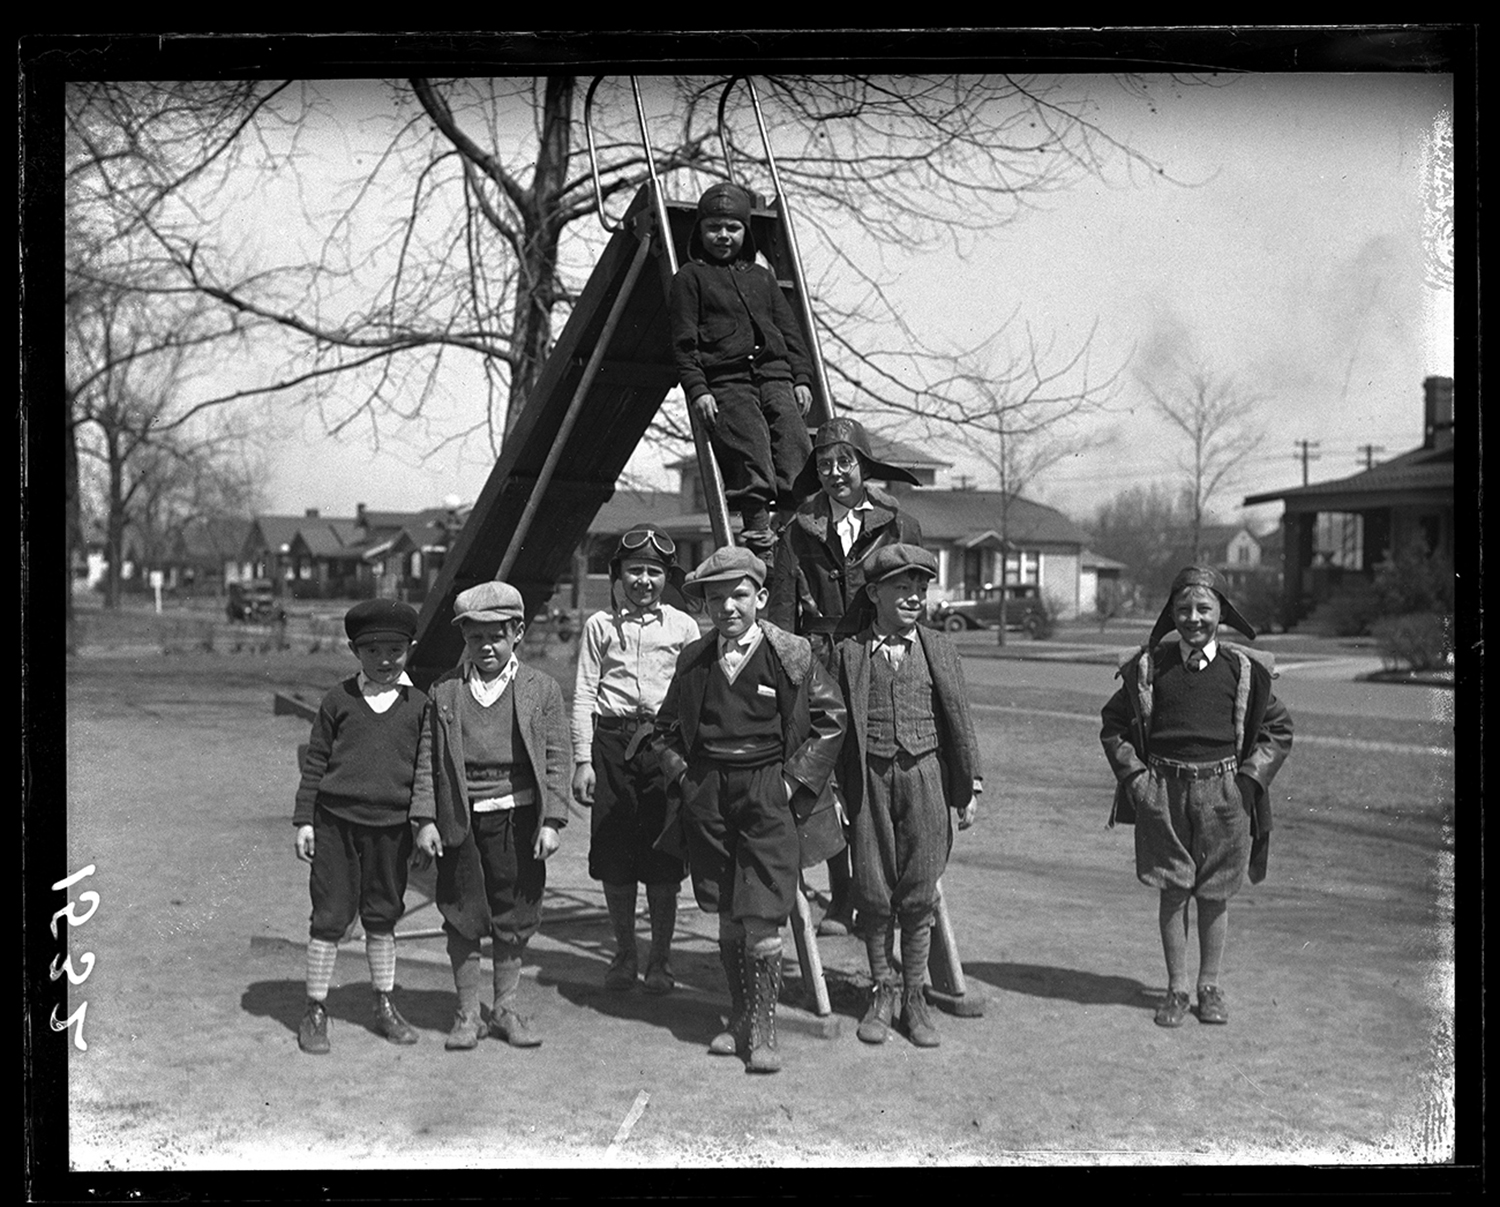 Boys on playground with slide, ca. 1930. File/The State Journal-Register